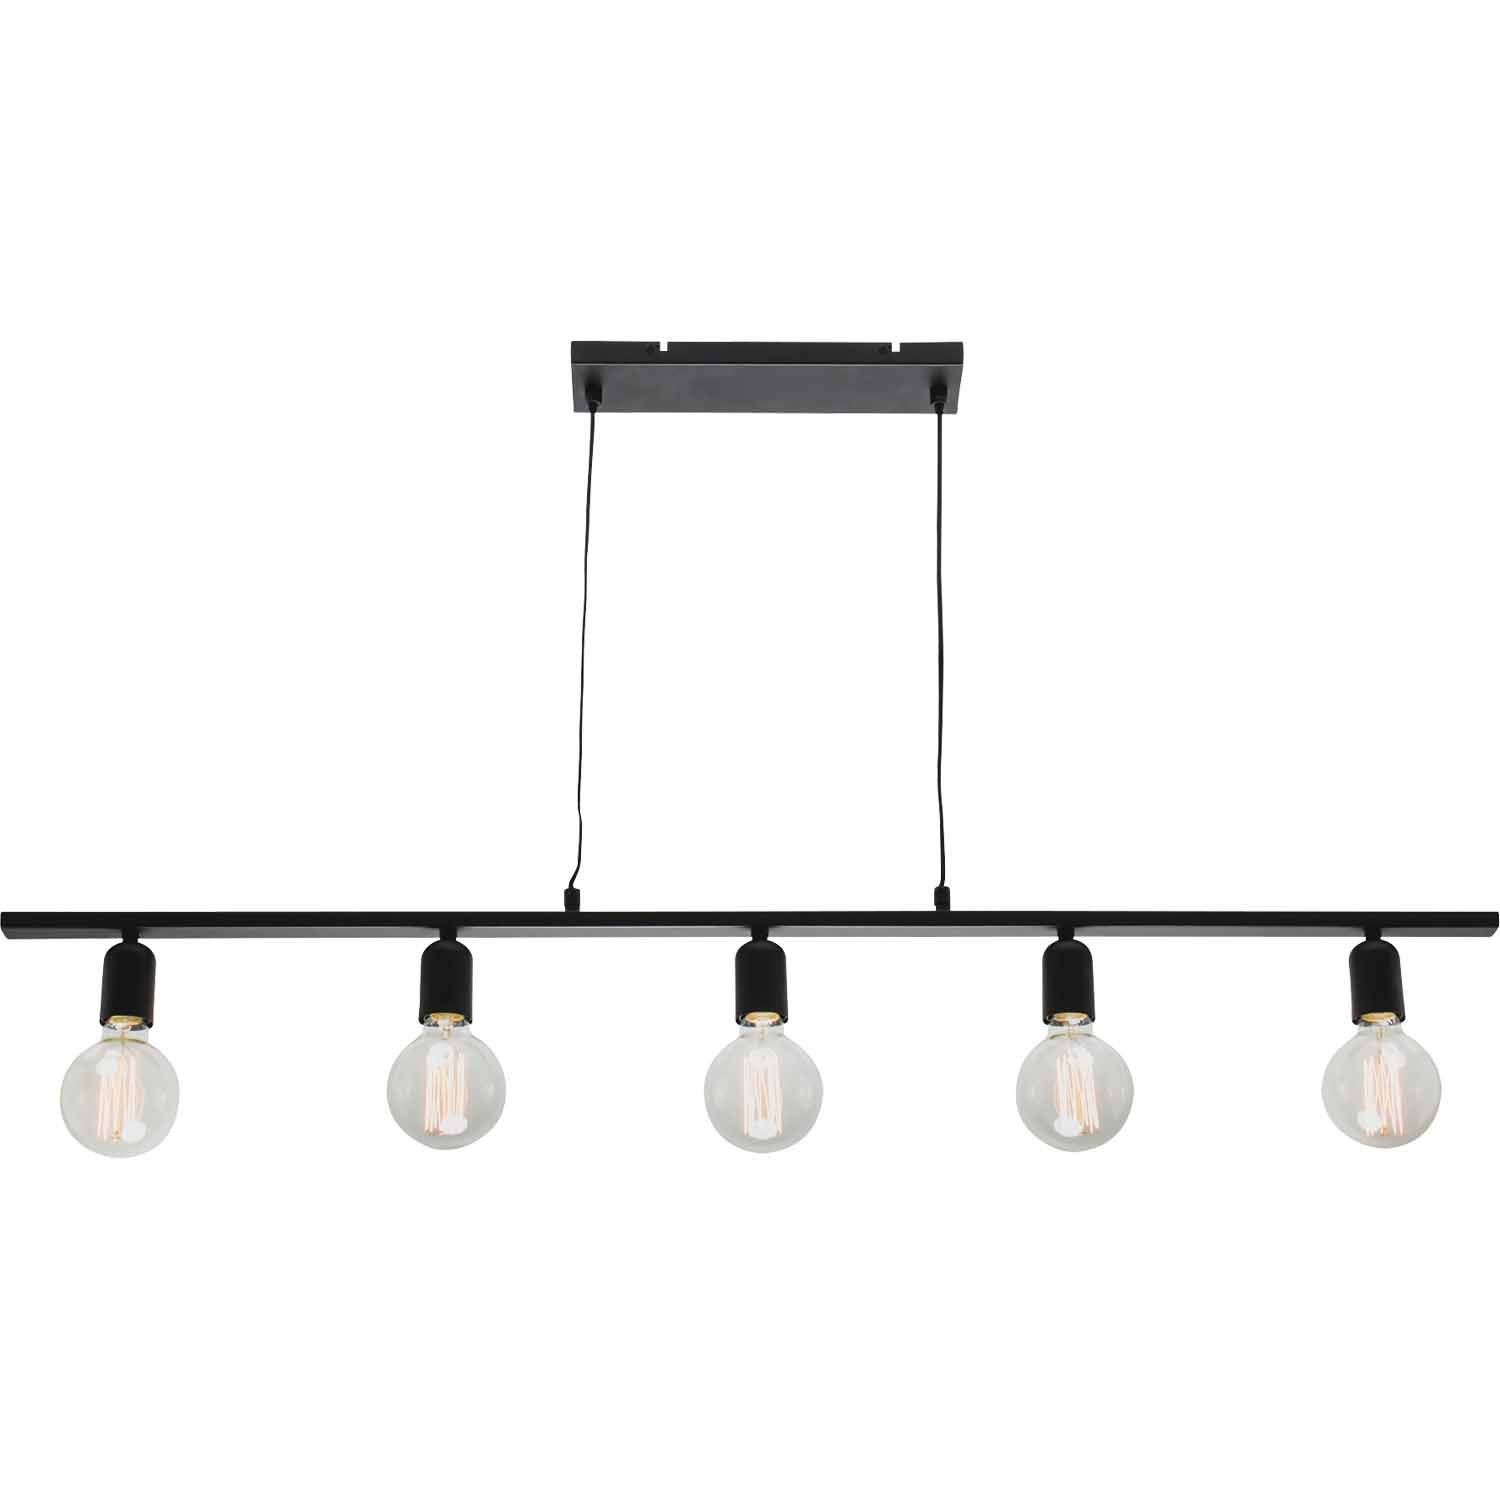 Fiona 5 Light Bar Pendant 25 Watt House Design In 2019